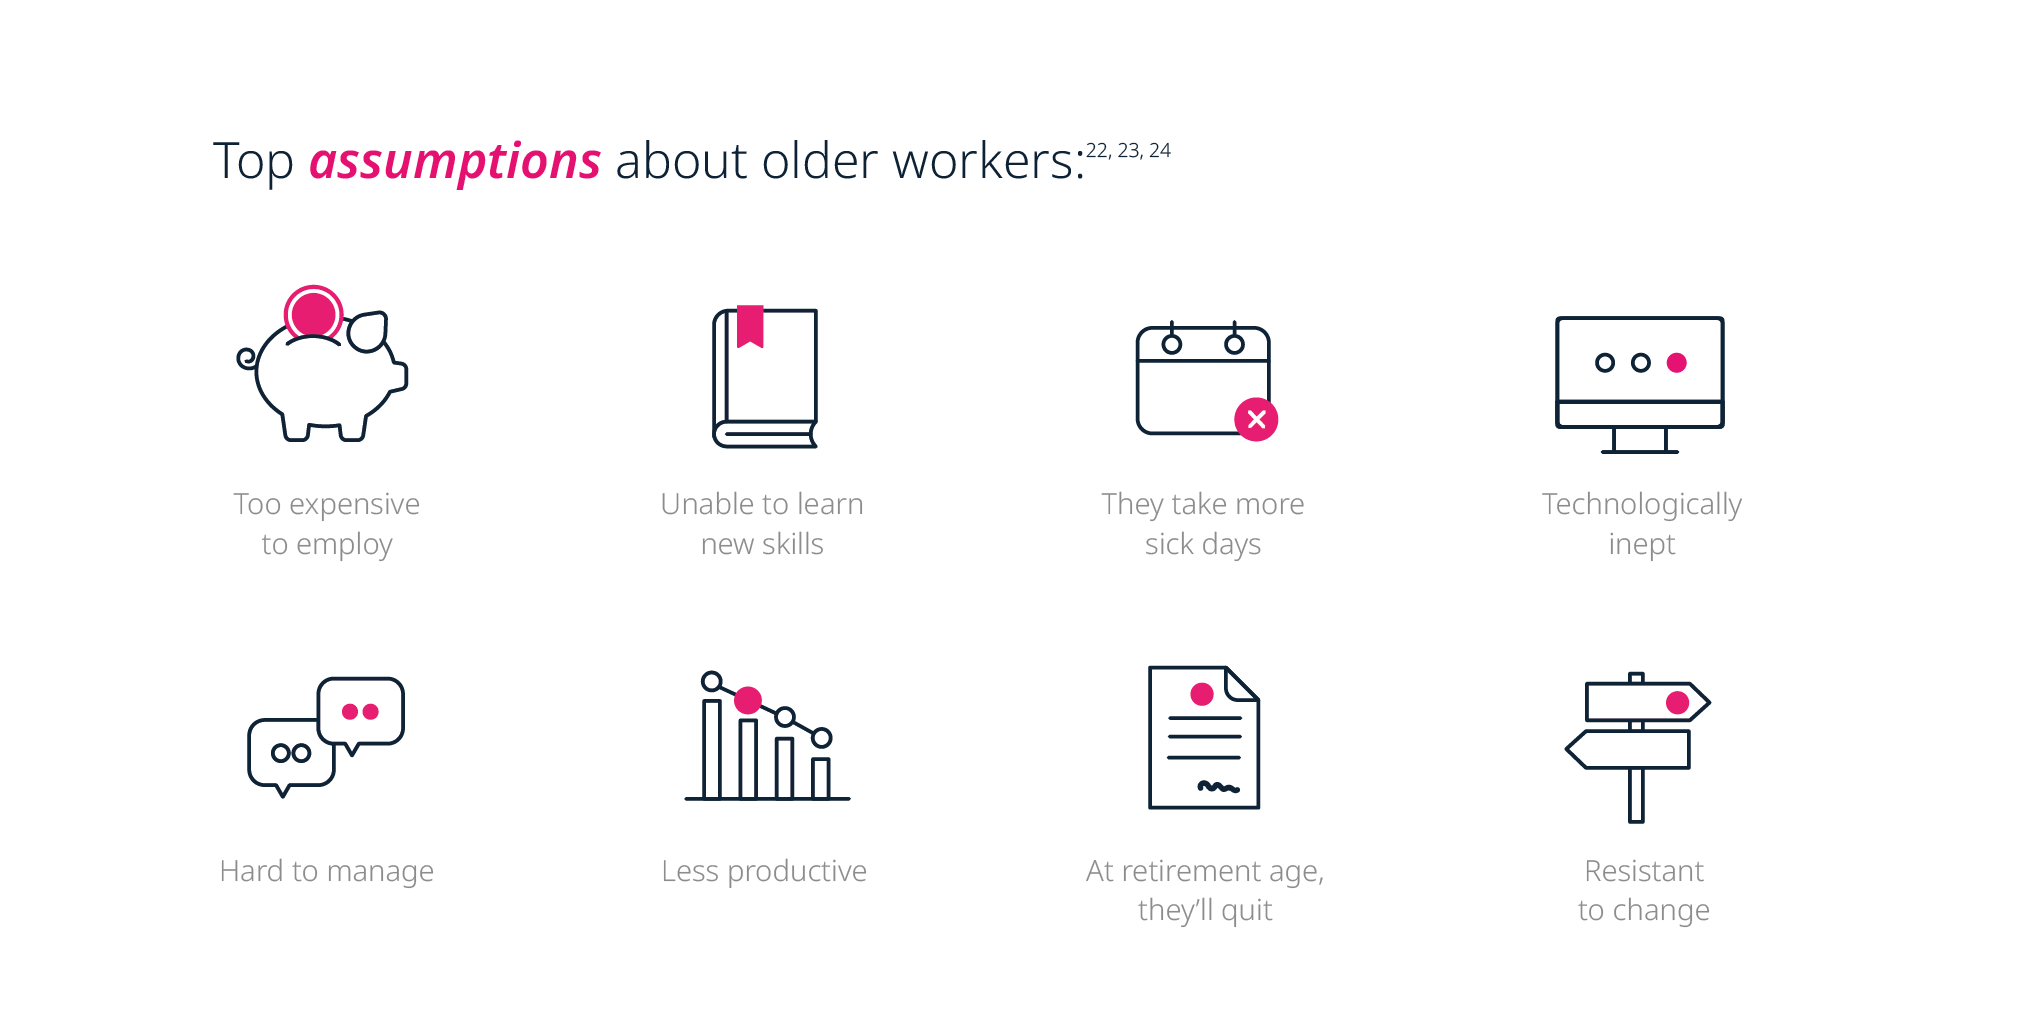 Top assumptions about older professionals in the workforce